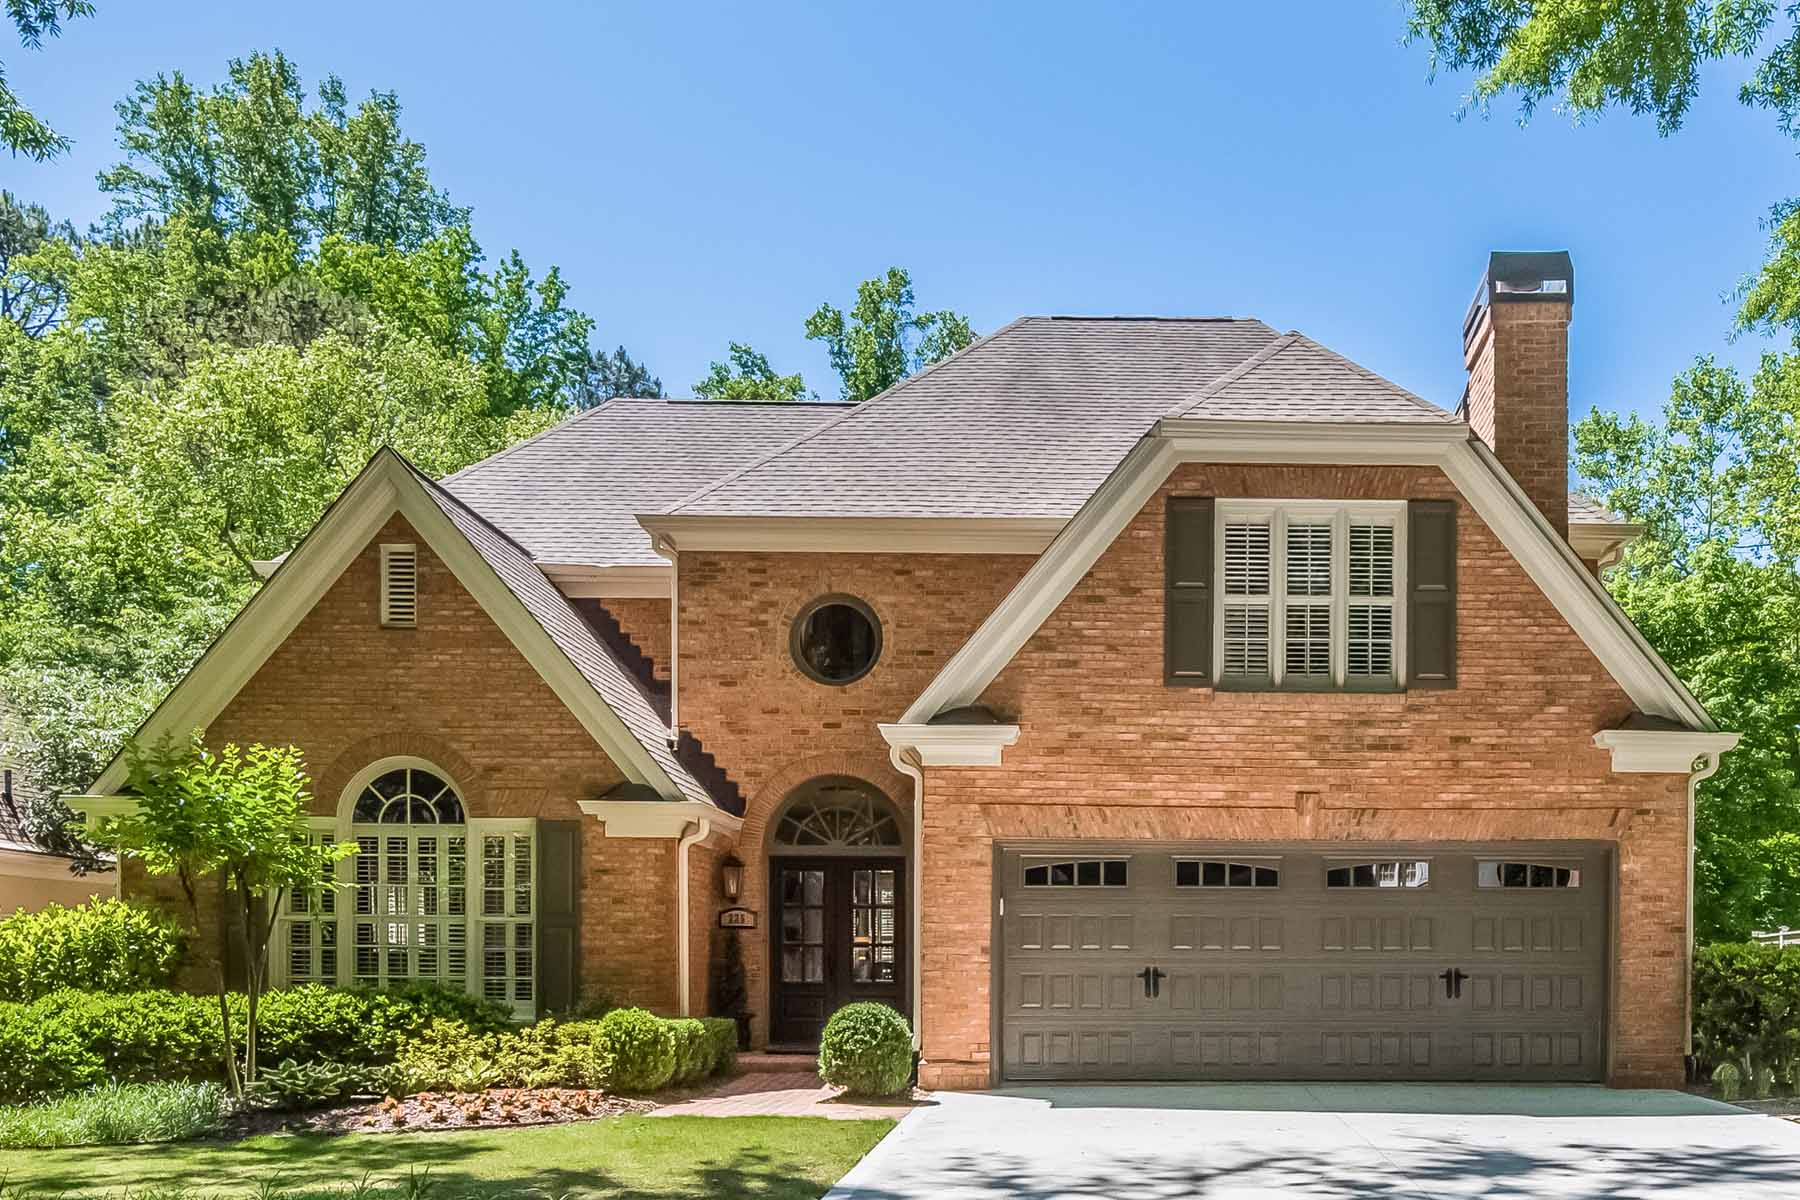 Single Family Home for Sale at Private Luxurious Retreat just Minutes to Buckhead, Brookhaven and Sandy Springs 225 Woodchase Close NE Atlanta, Georgia, 30319 United States